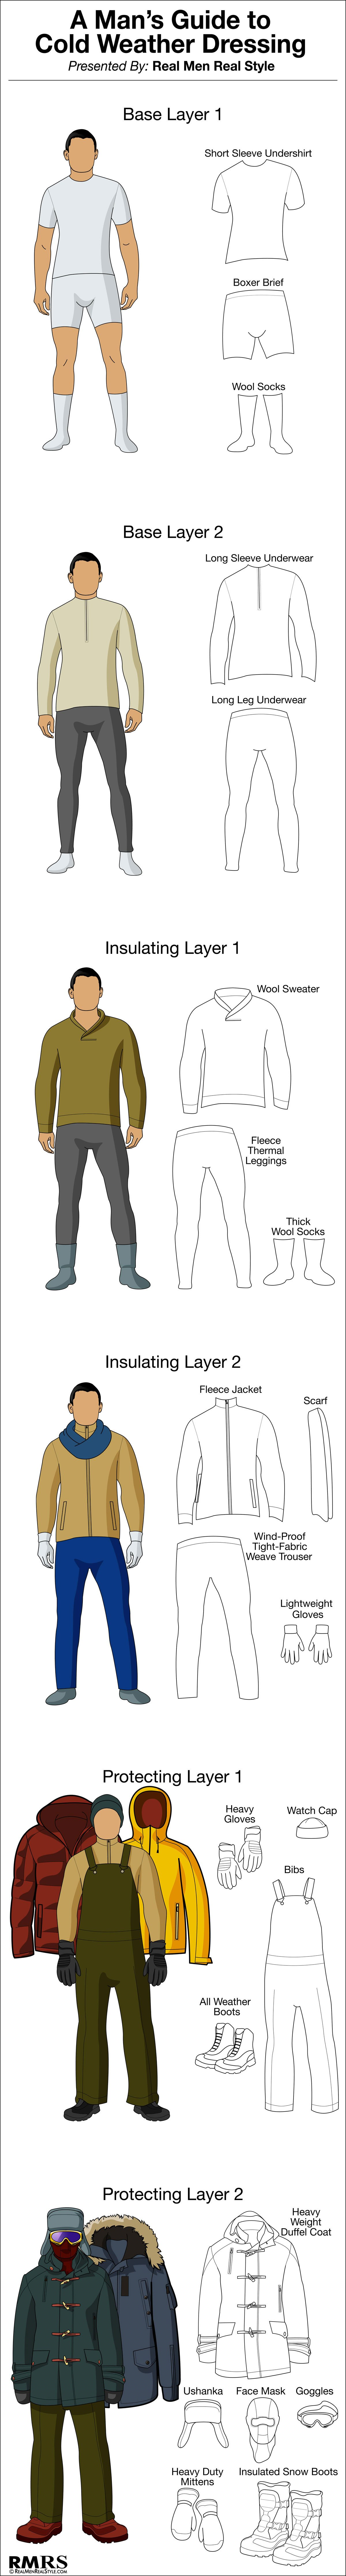 Cold Weather Dressing Infographic